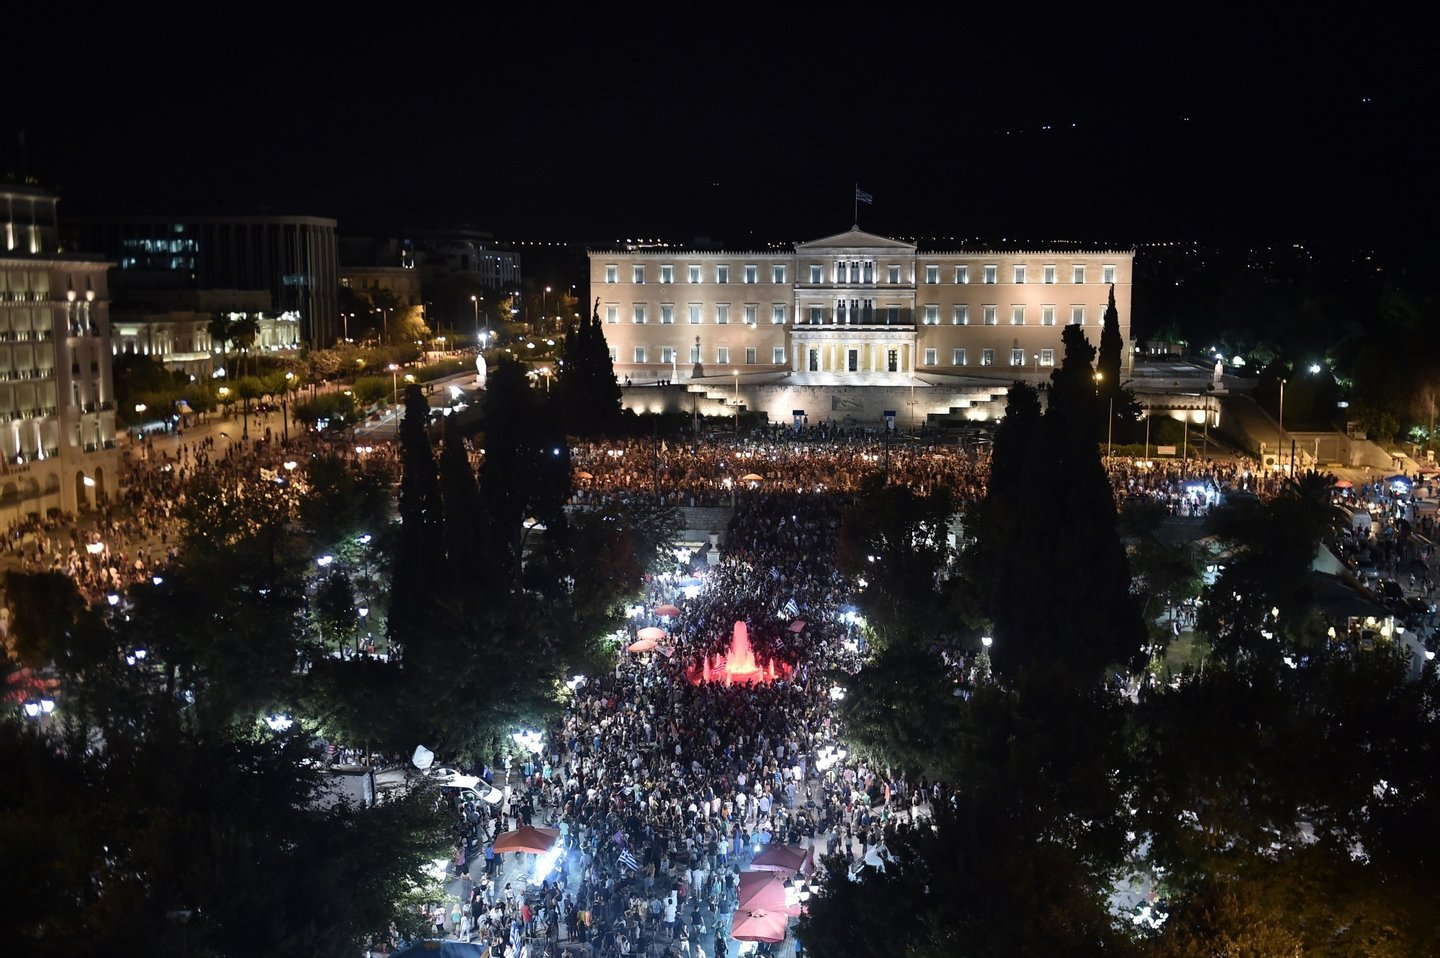 People gather in front of the Greek Parliament in Athens on July 5, 2015, after early results showed those who rejected further austerity measures in a crucial bailout referendum were poised to win. Over 61 percent of Greek voters on July 5 rejected fresh austerity demands by the country's EU-IMF creditors in a historic referendum, official results from 50 percent of polling stations showed.  AFP PHOTO / ARIS MESSINIS        (Photo credit should read ARIS MESSINIS/AFP/Getty Images)